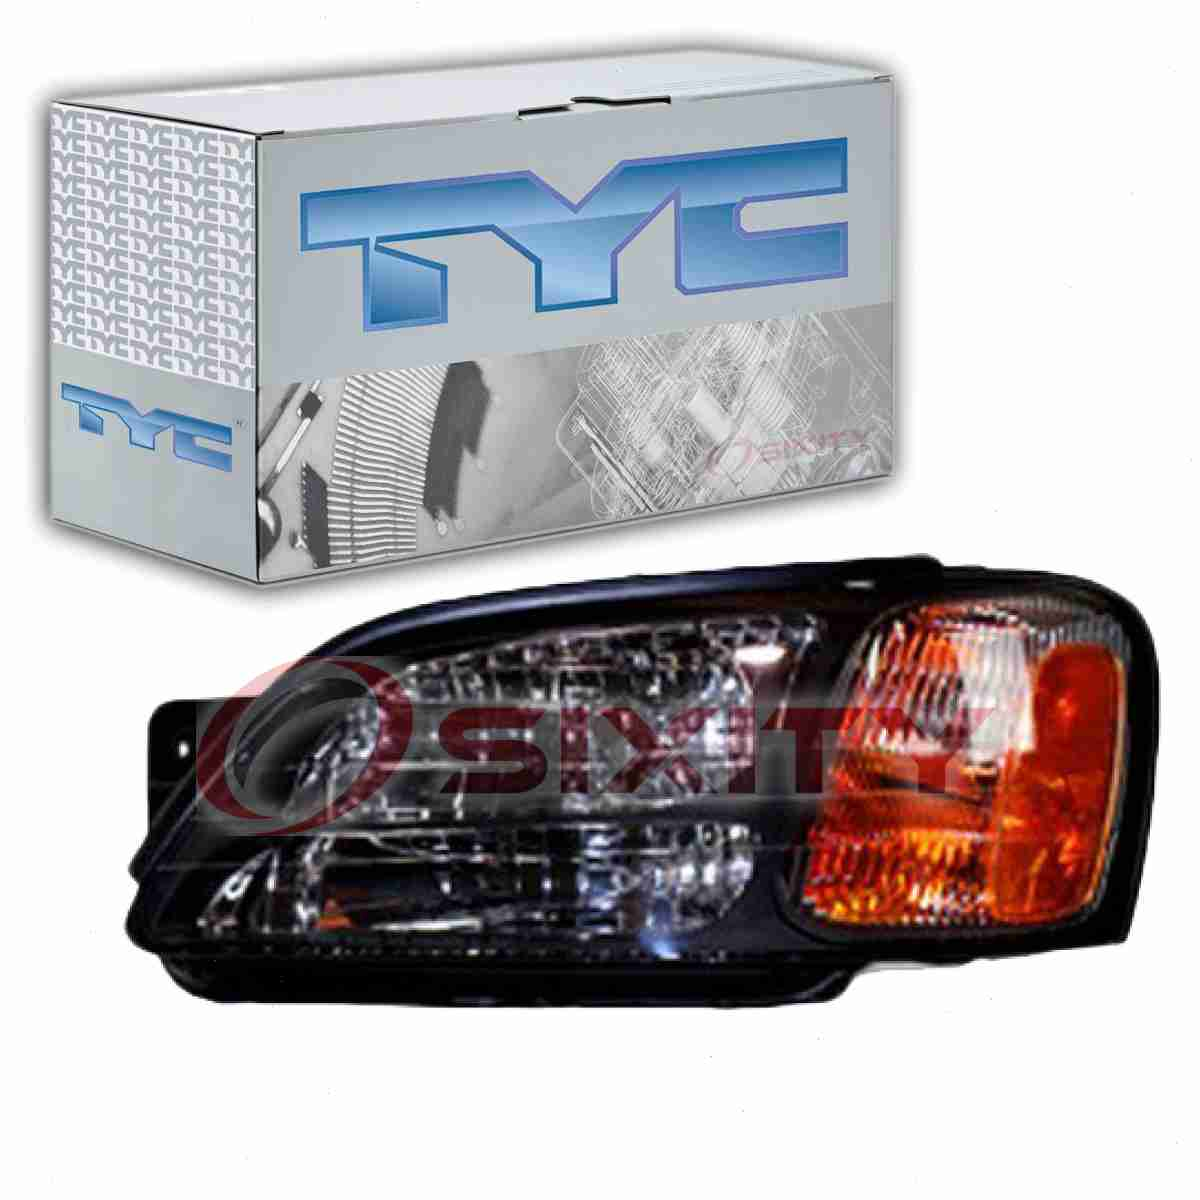 Details about TYC Left Headlight Assembly for 2000-2004 Subaru Outback vb